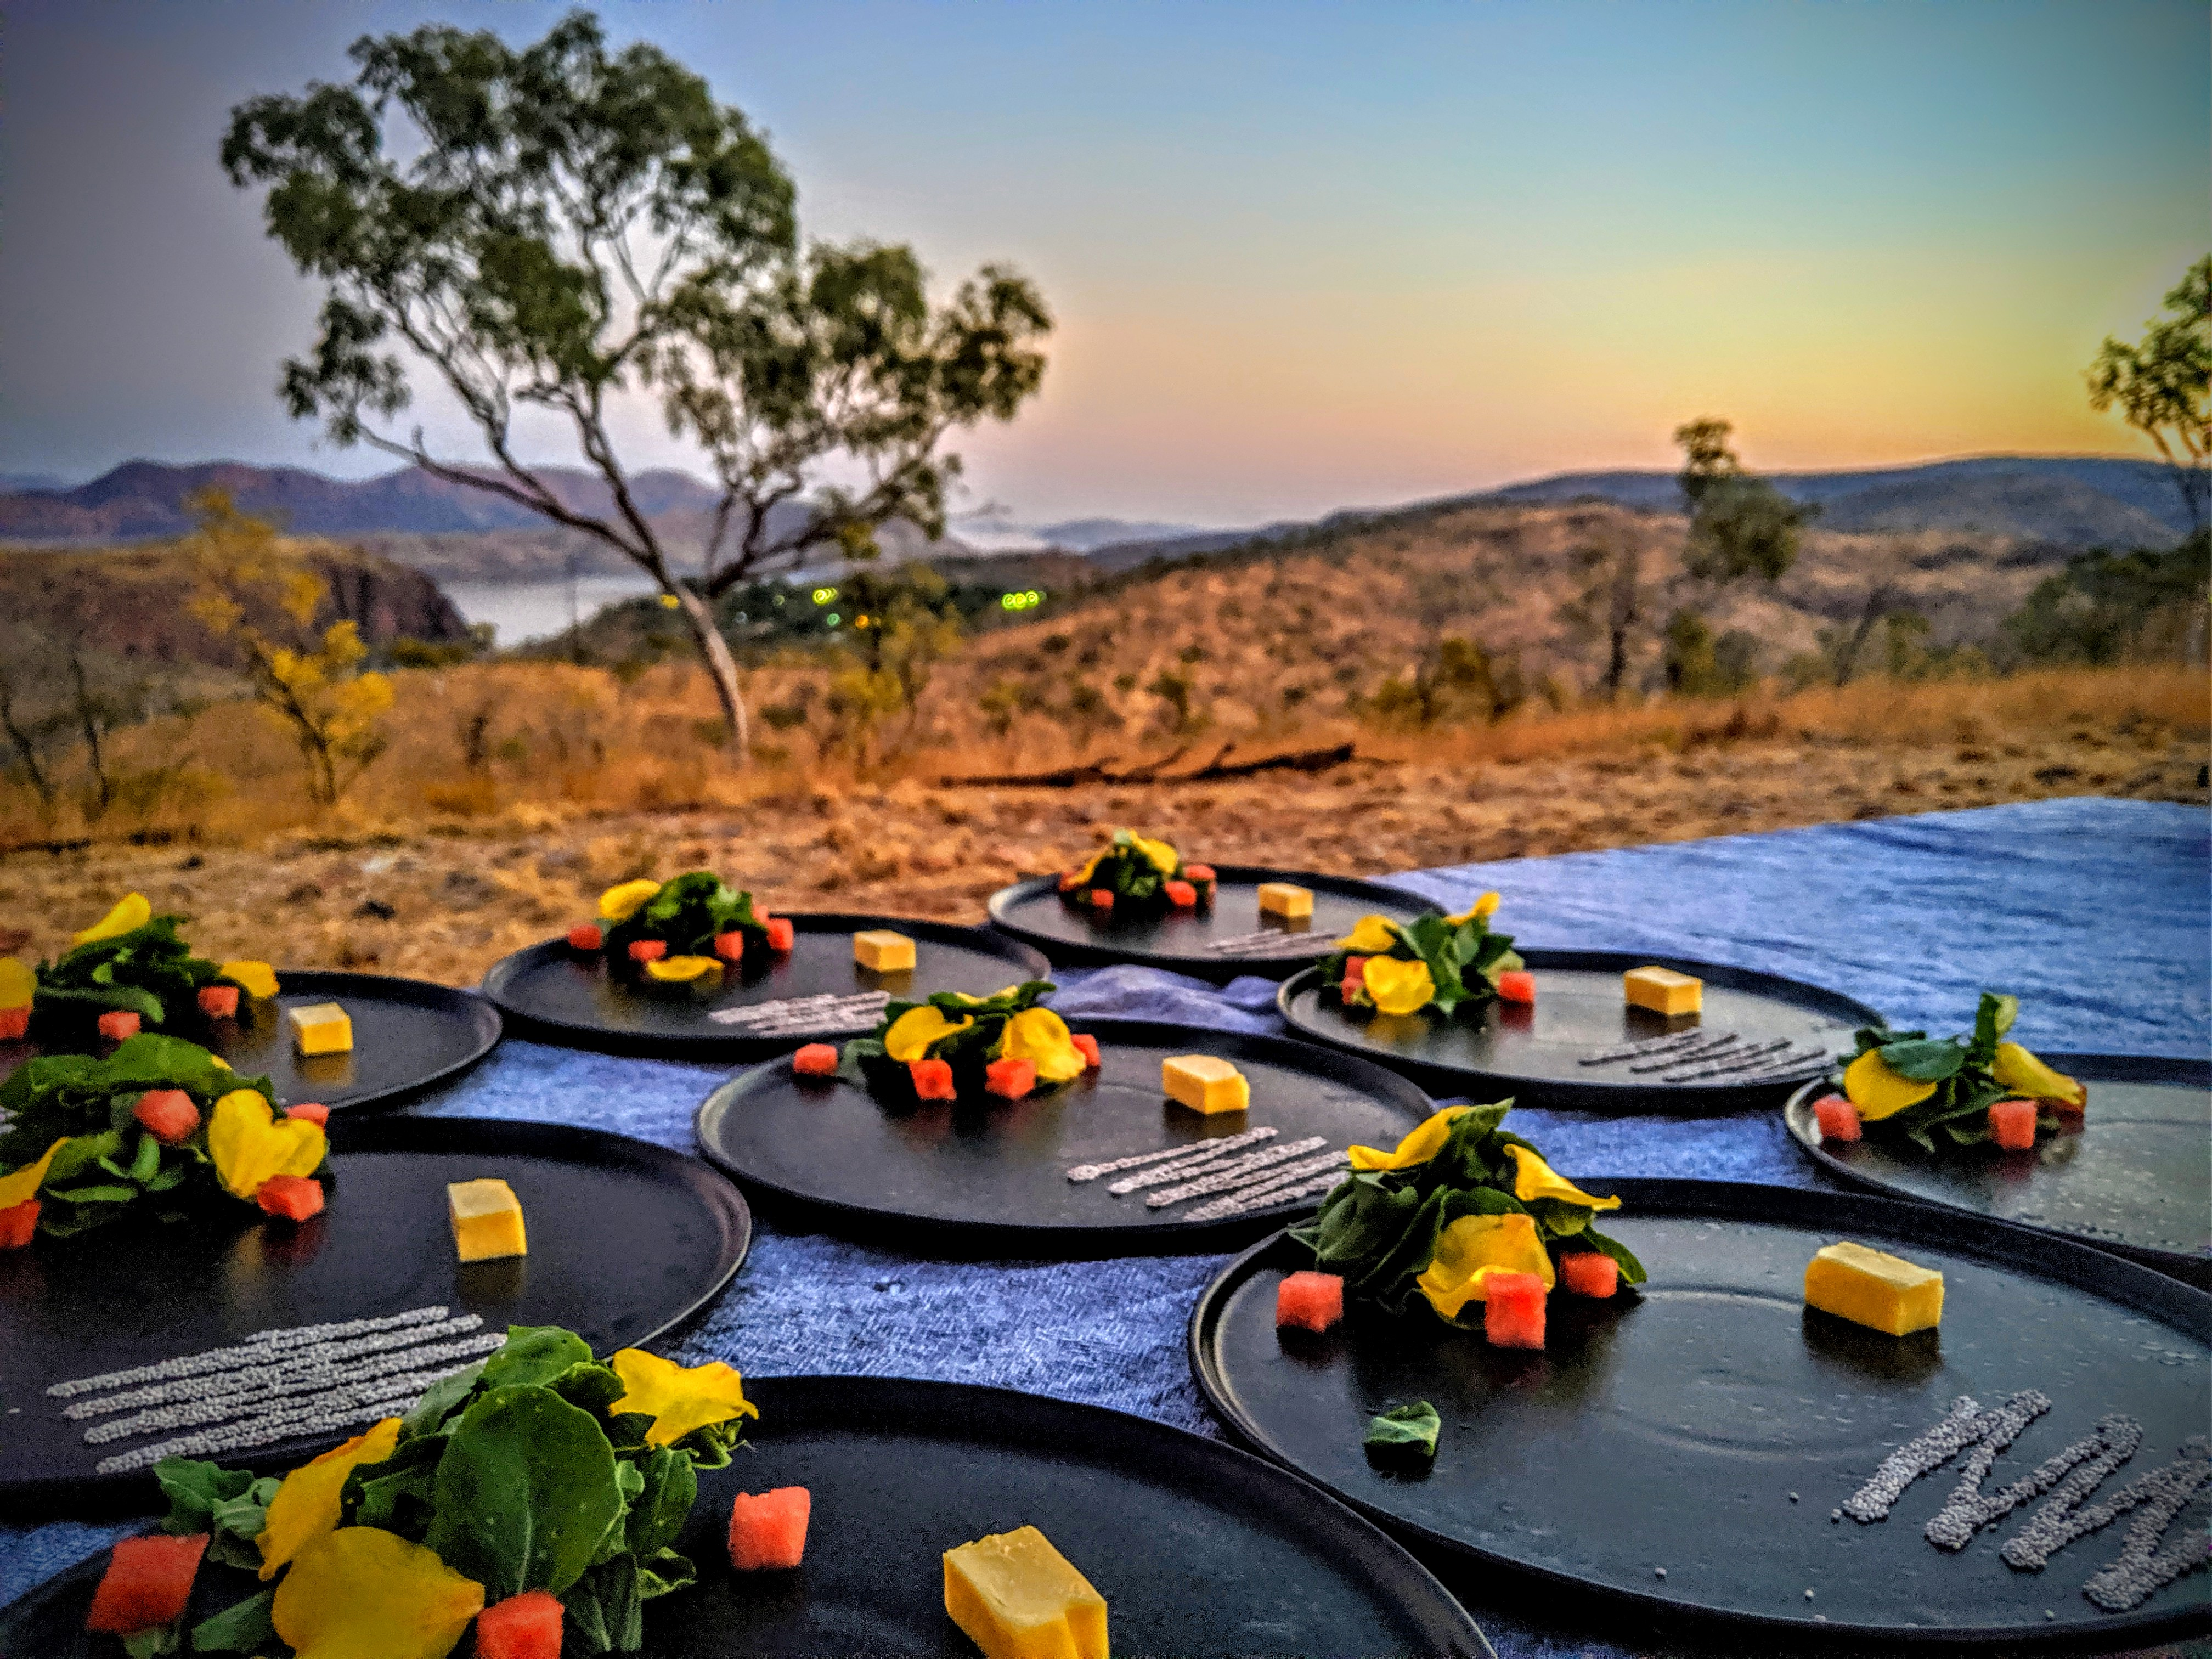 Gourmet Camp Oven Experience